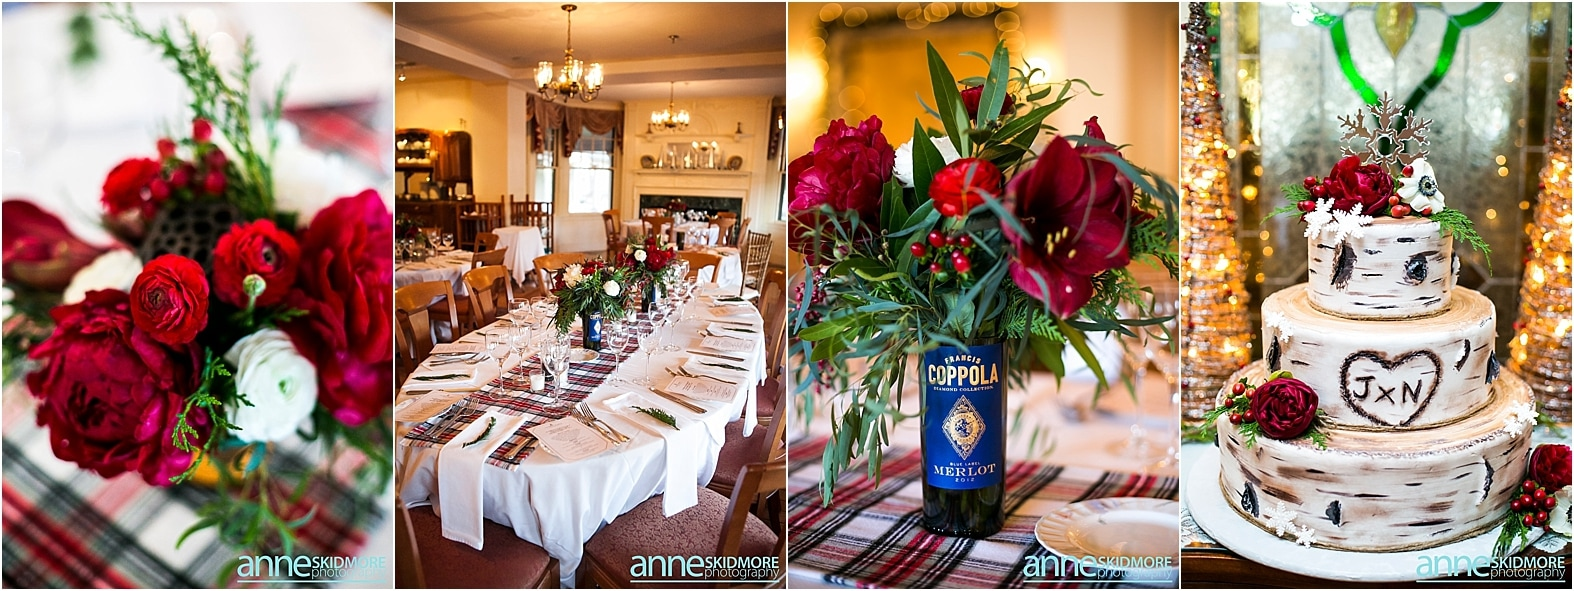 Wentworth_Inn_Wedding_036